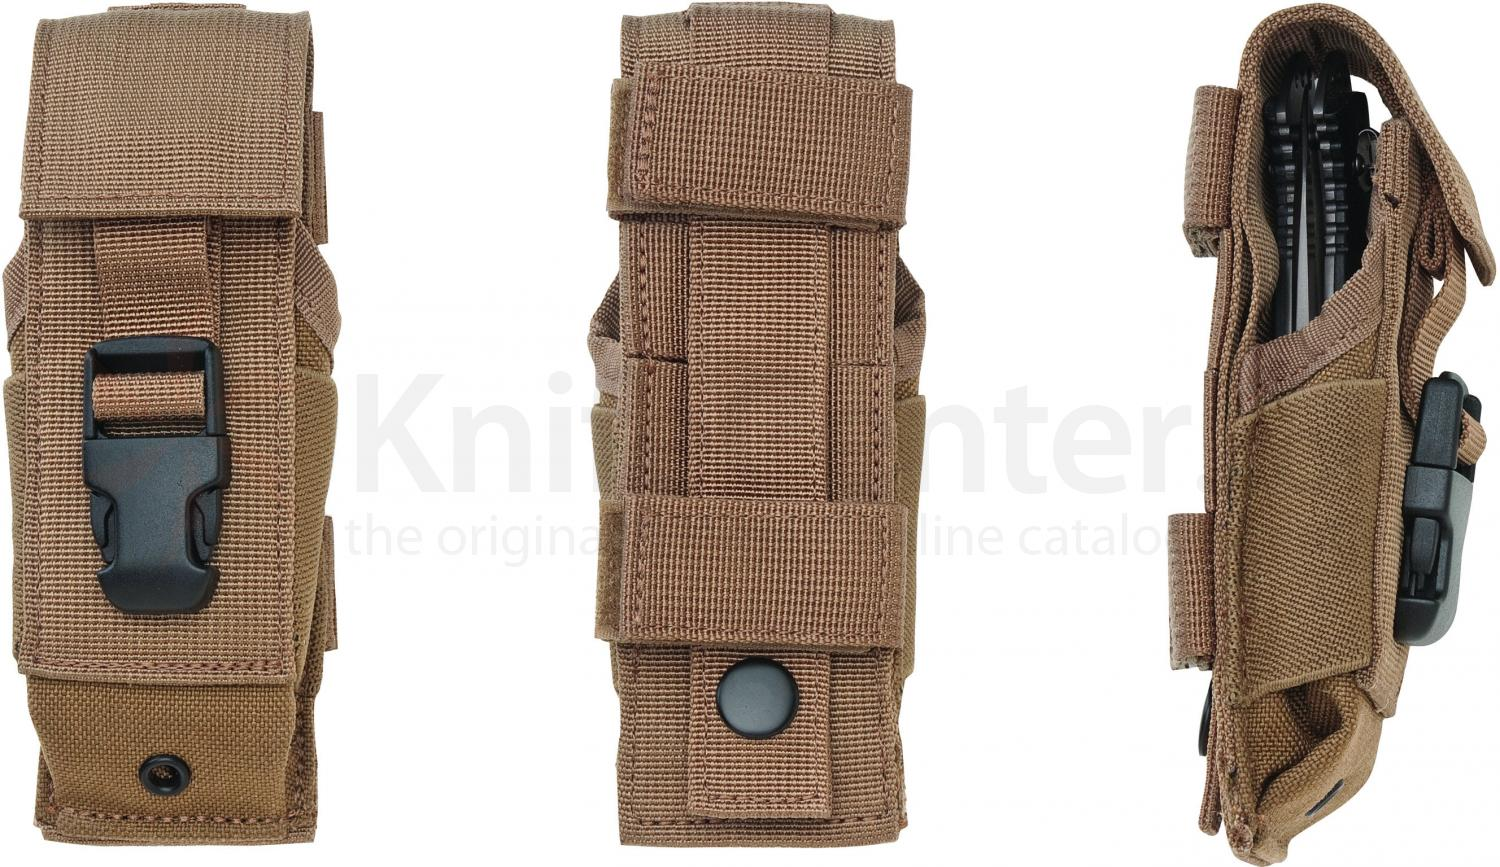 Timberline Tactical Ballistic Nylon Dual Carry MOLLE Sheath, Coyote-Tan